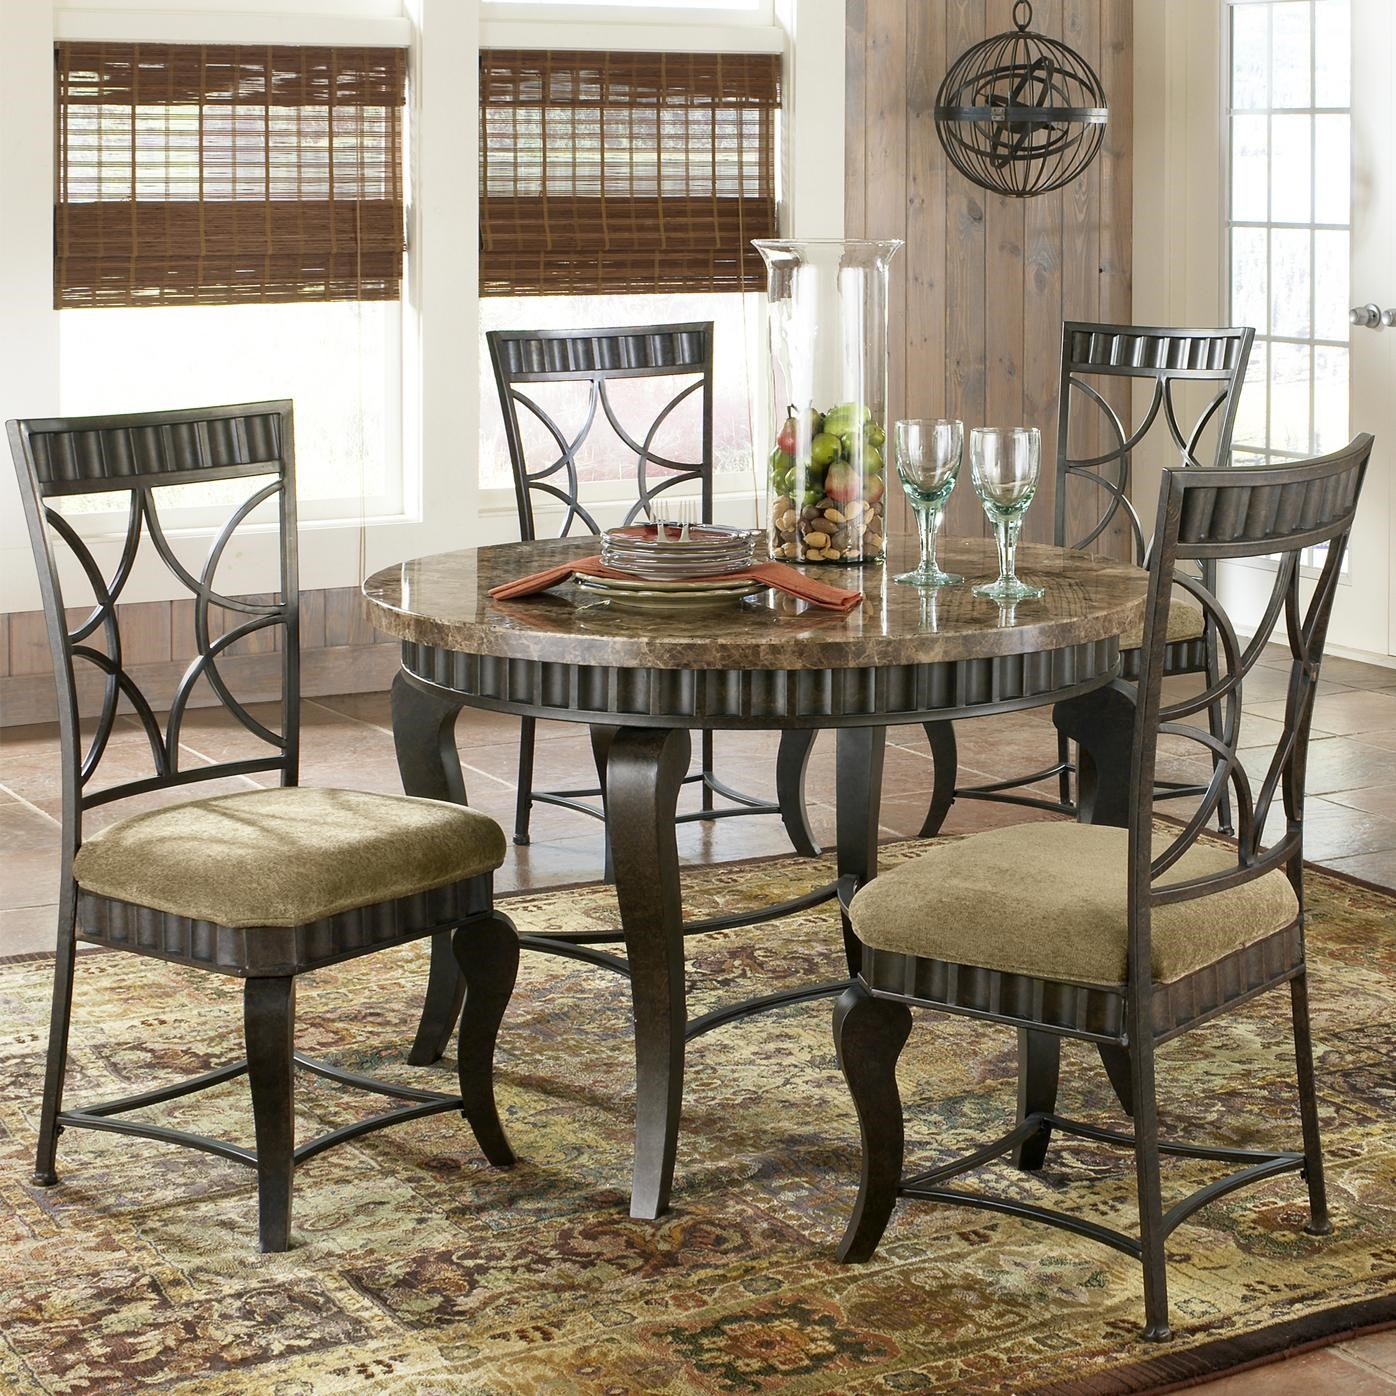 Merveilleux Steve Silver Hamlyn 5 Piece Round Faux Marble Top Metal Dining Table Set